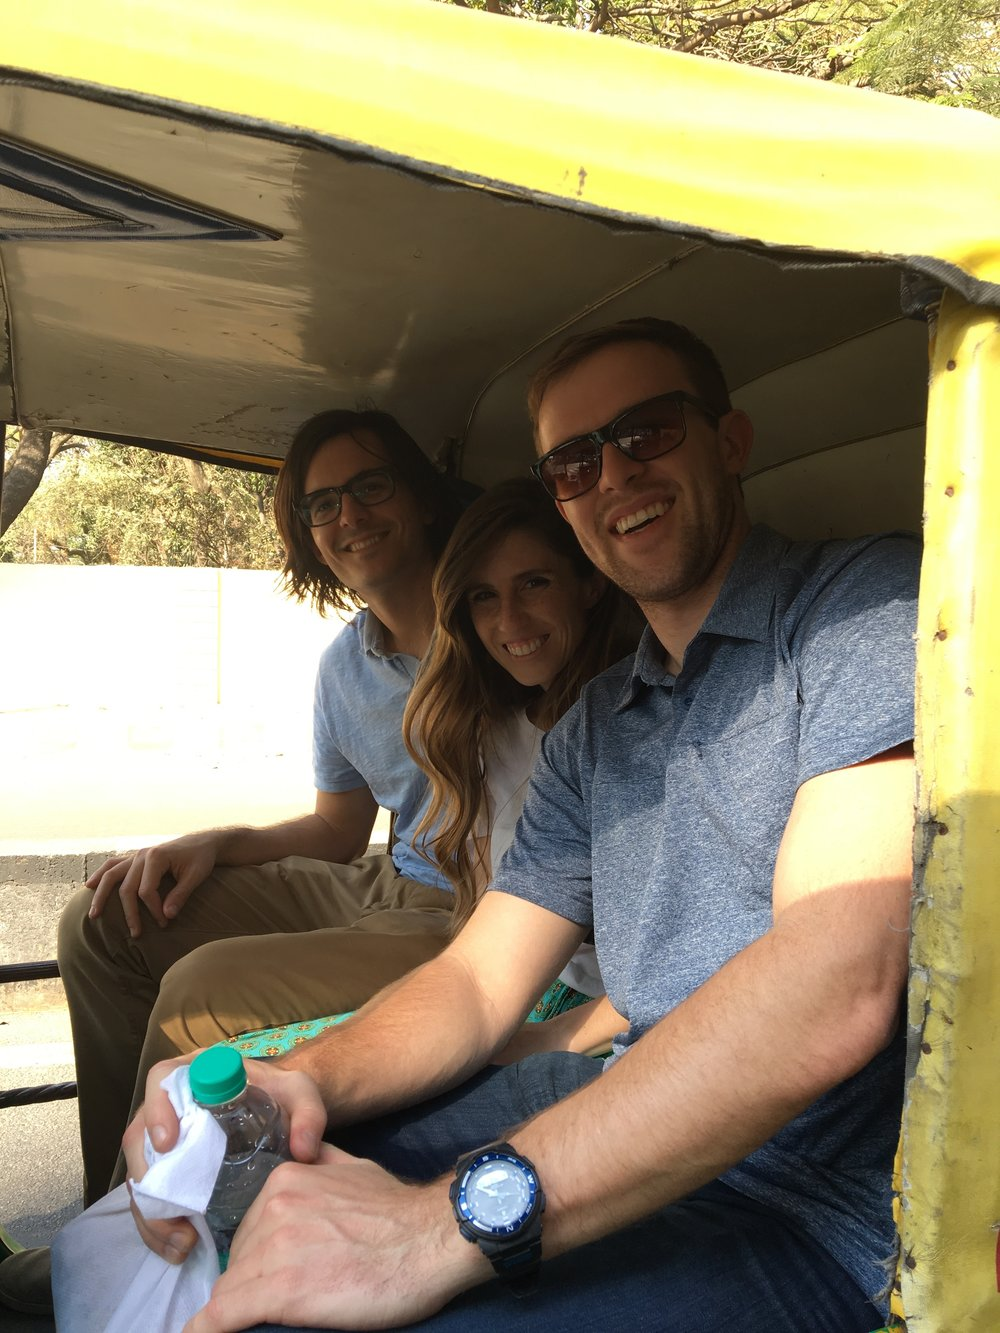 Driving around town in the auto rickshaw